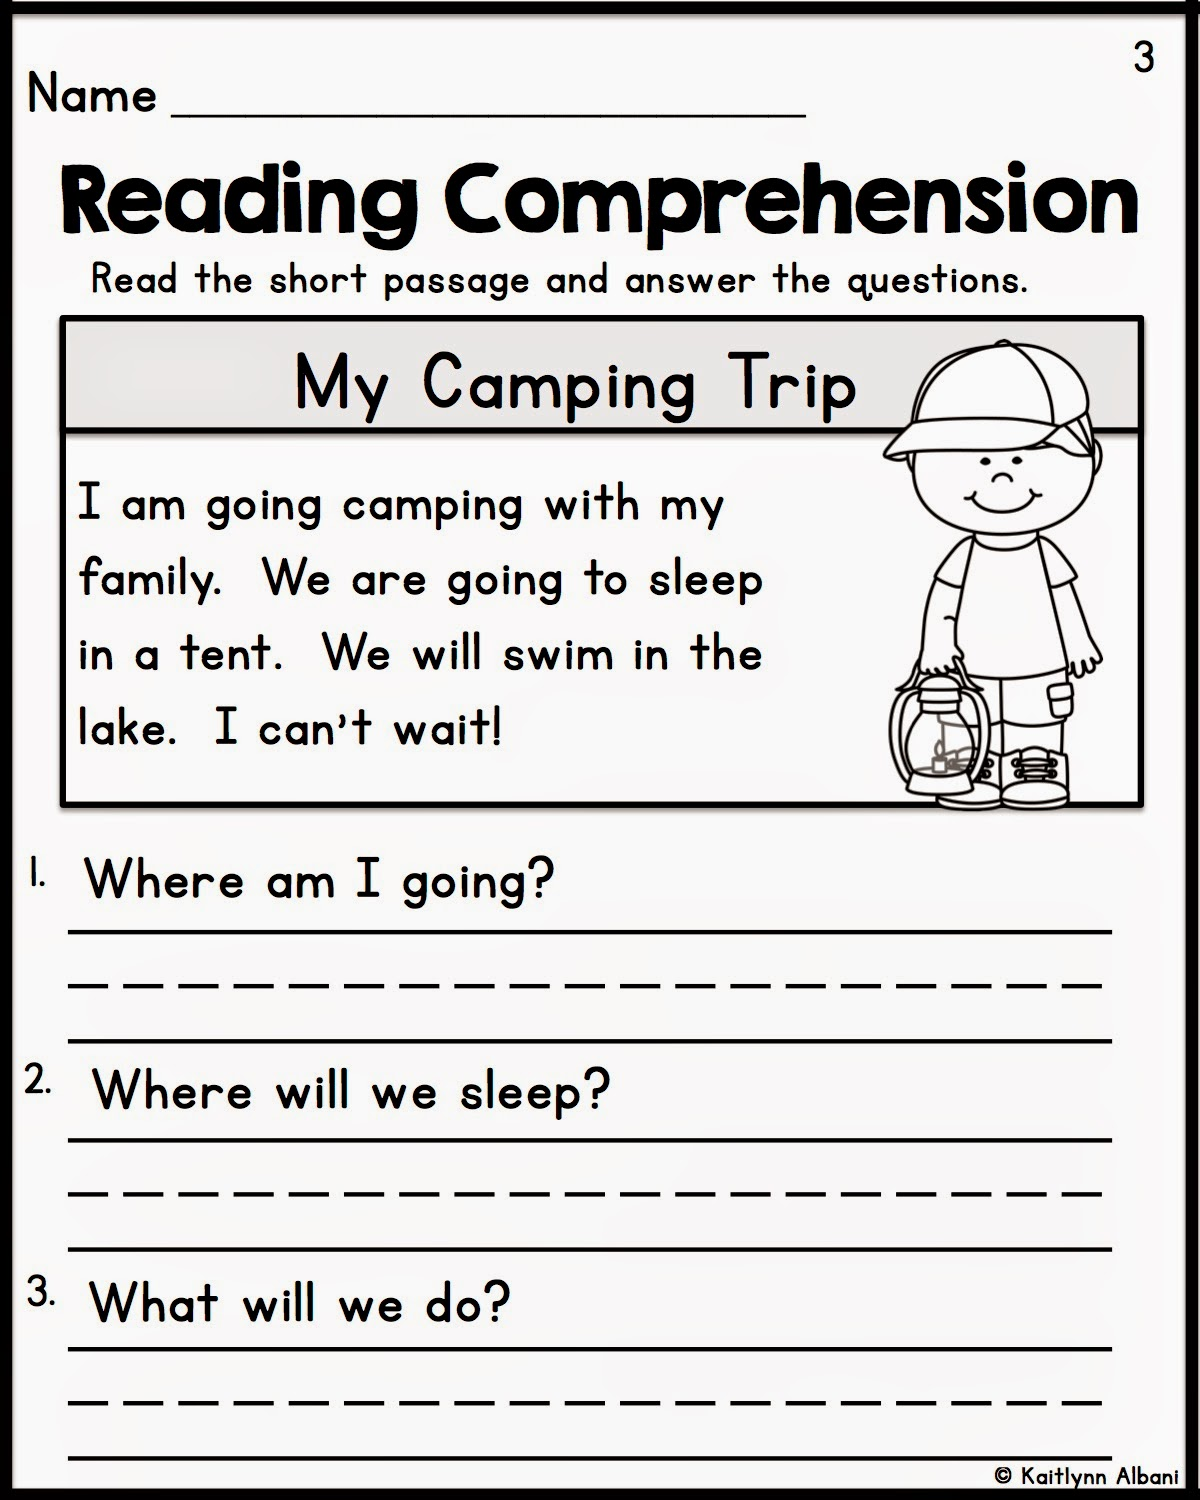 Worksheet 604780 Reading Comprehension Kindergarten Worksheets – Free Kindergarten Reading Comprehension Worksheets